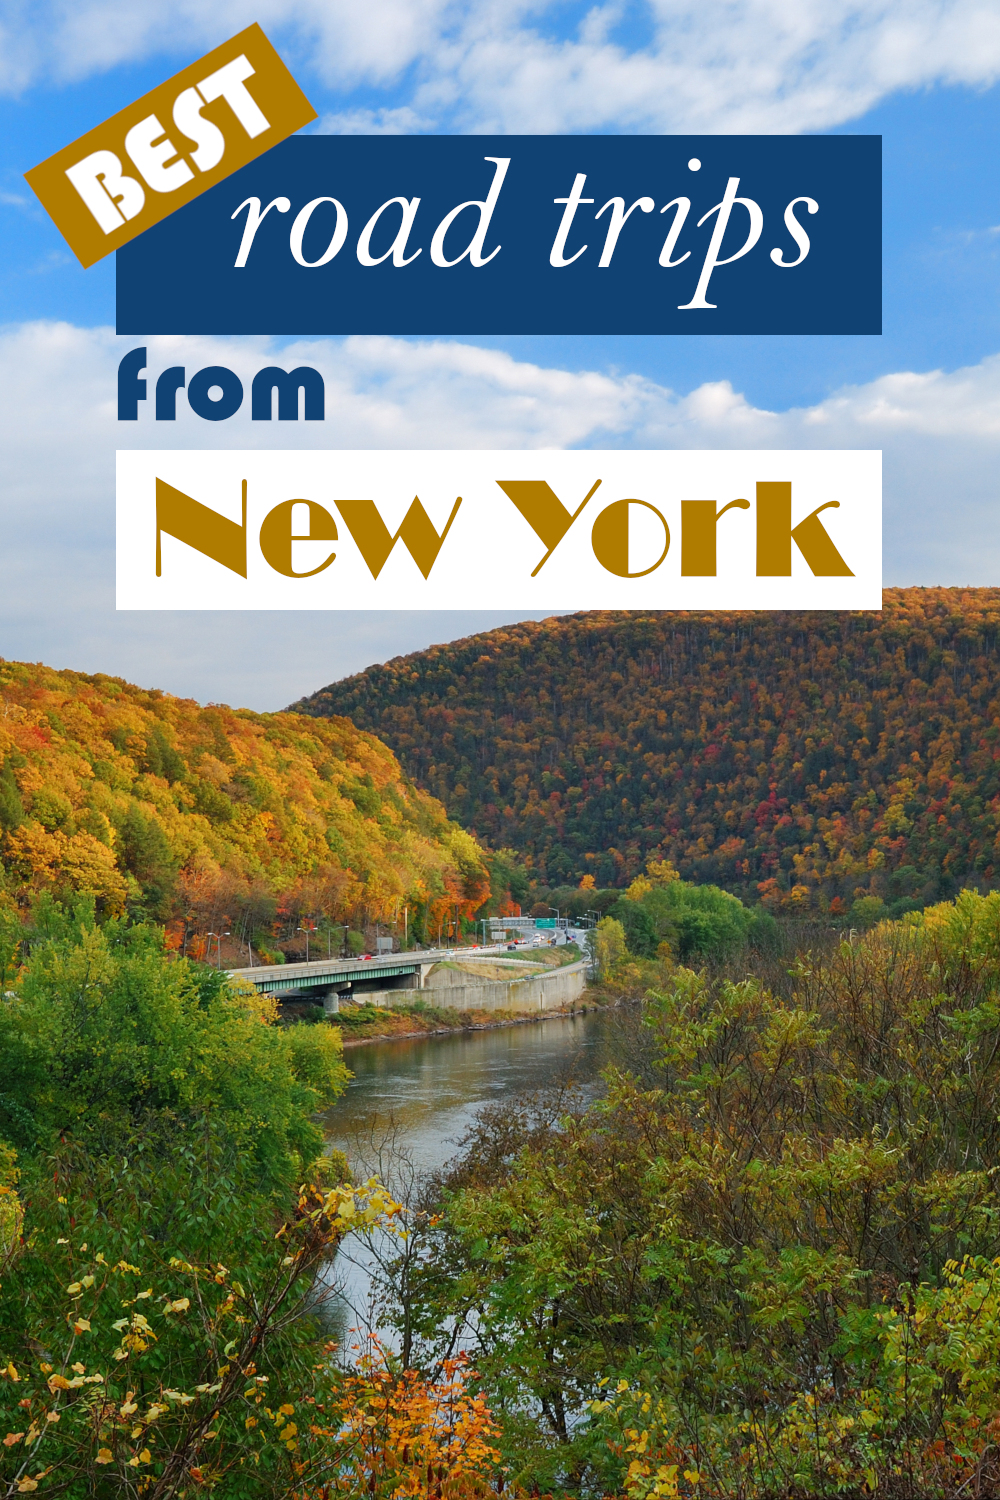 Best road trips from New York - from short day drives to week-long adventures from New York State to Massachusetts, Virginia and even Canada